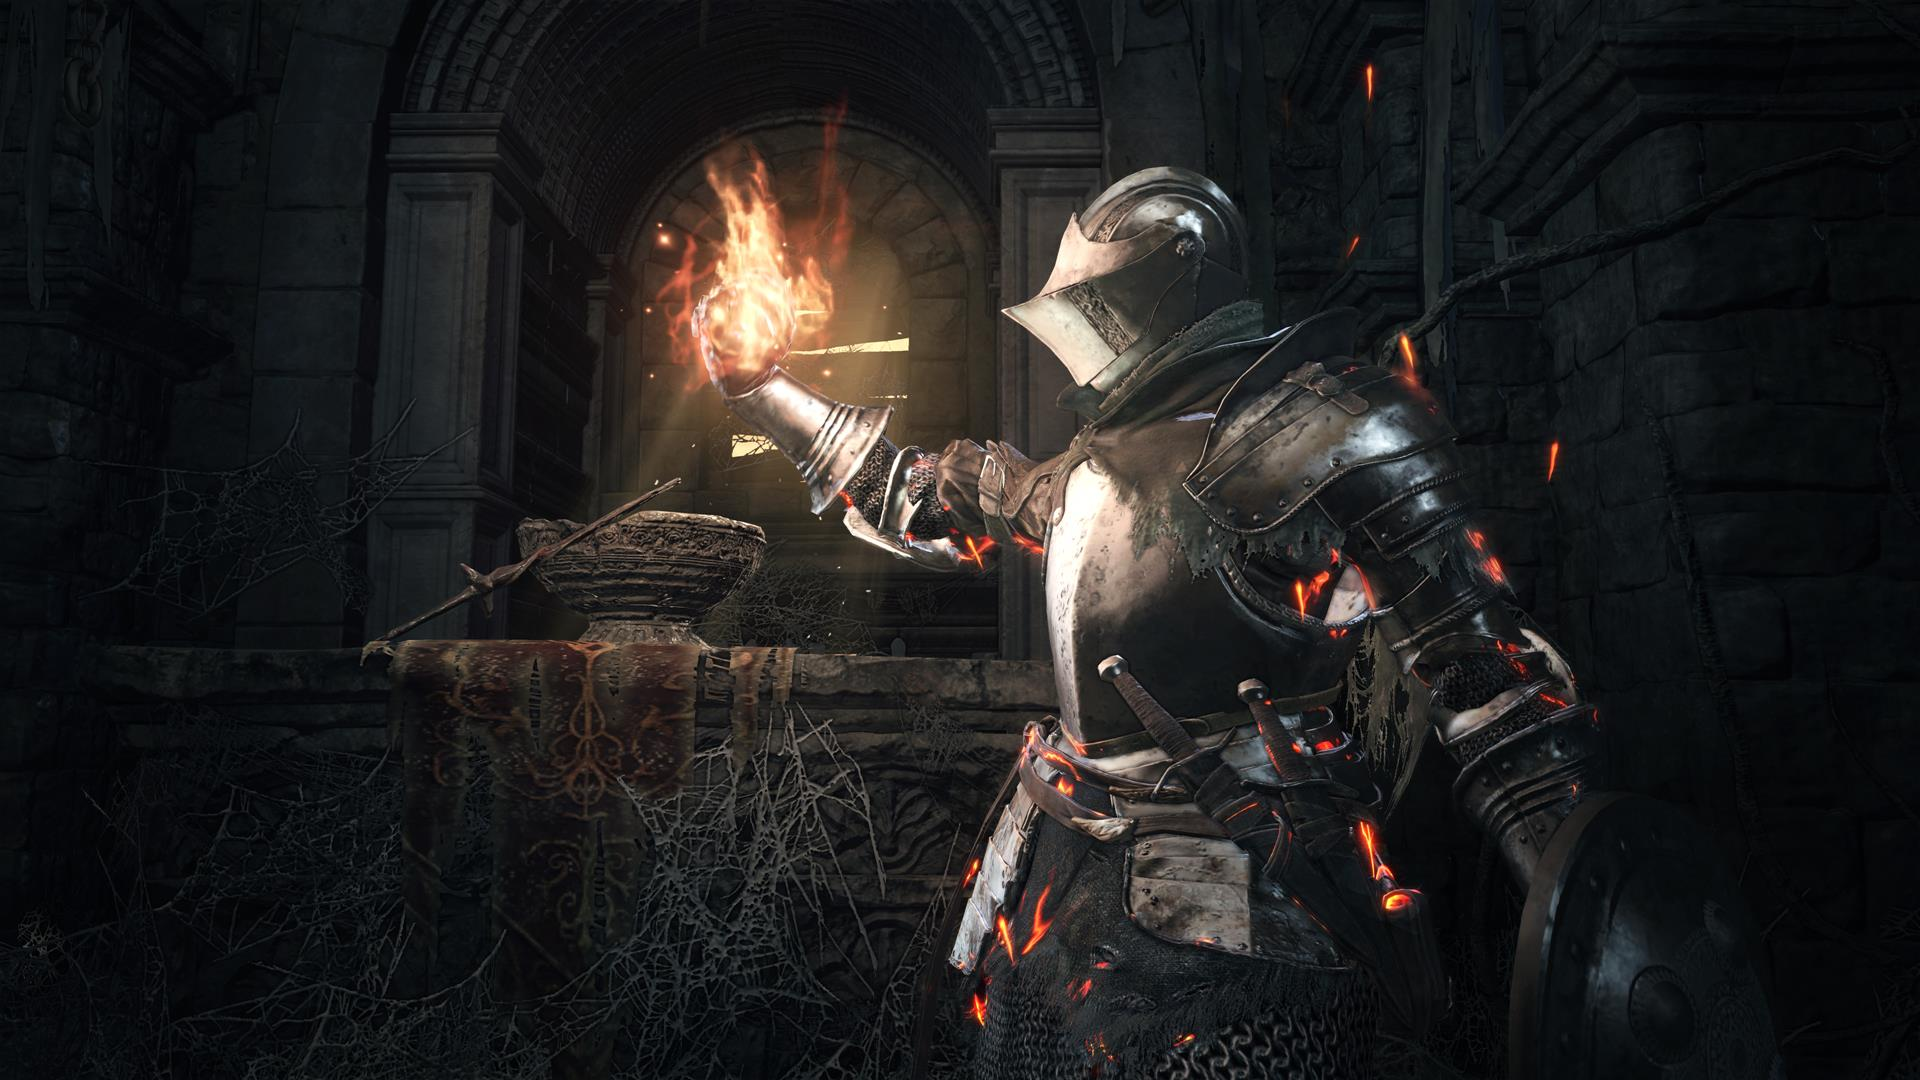 dark_souls_3_being_lord_ofcinder_